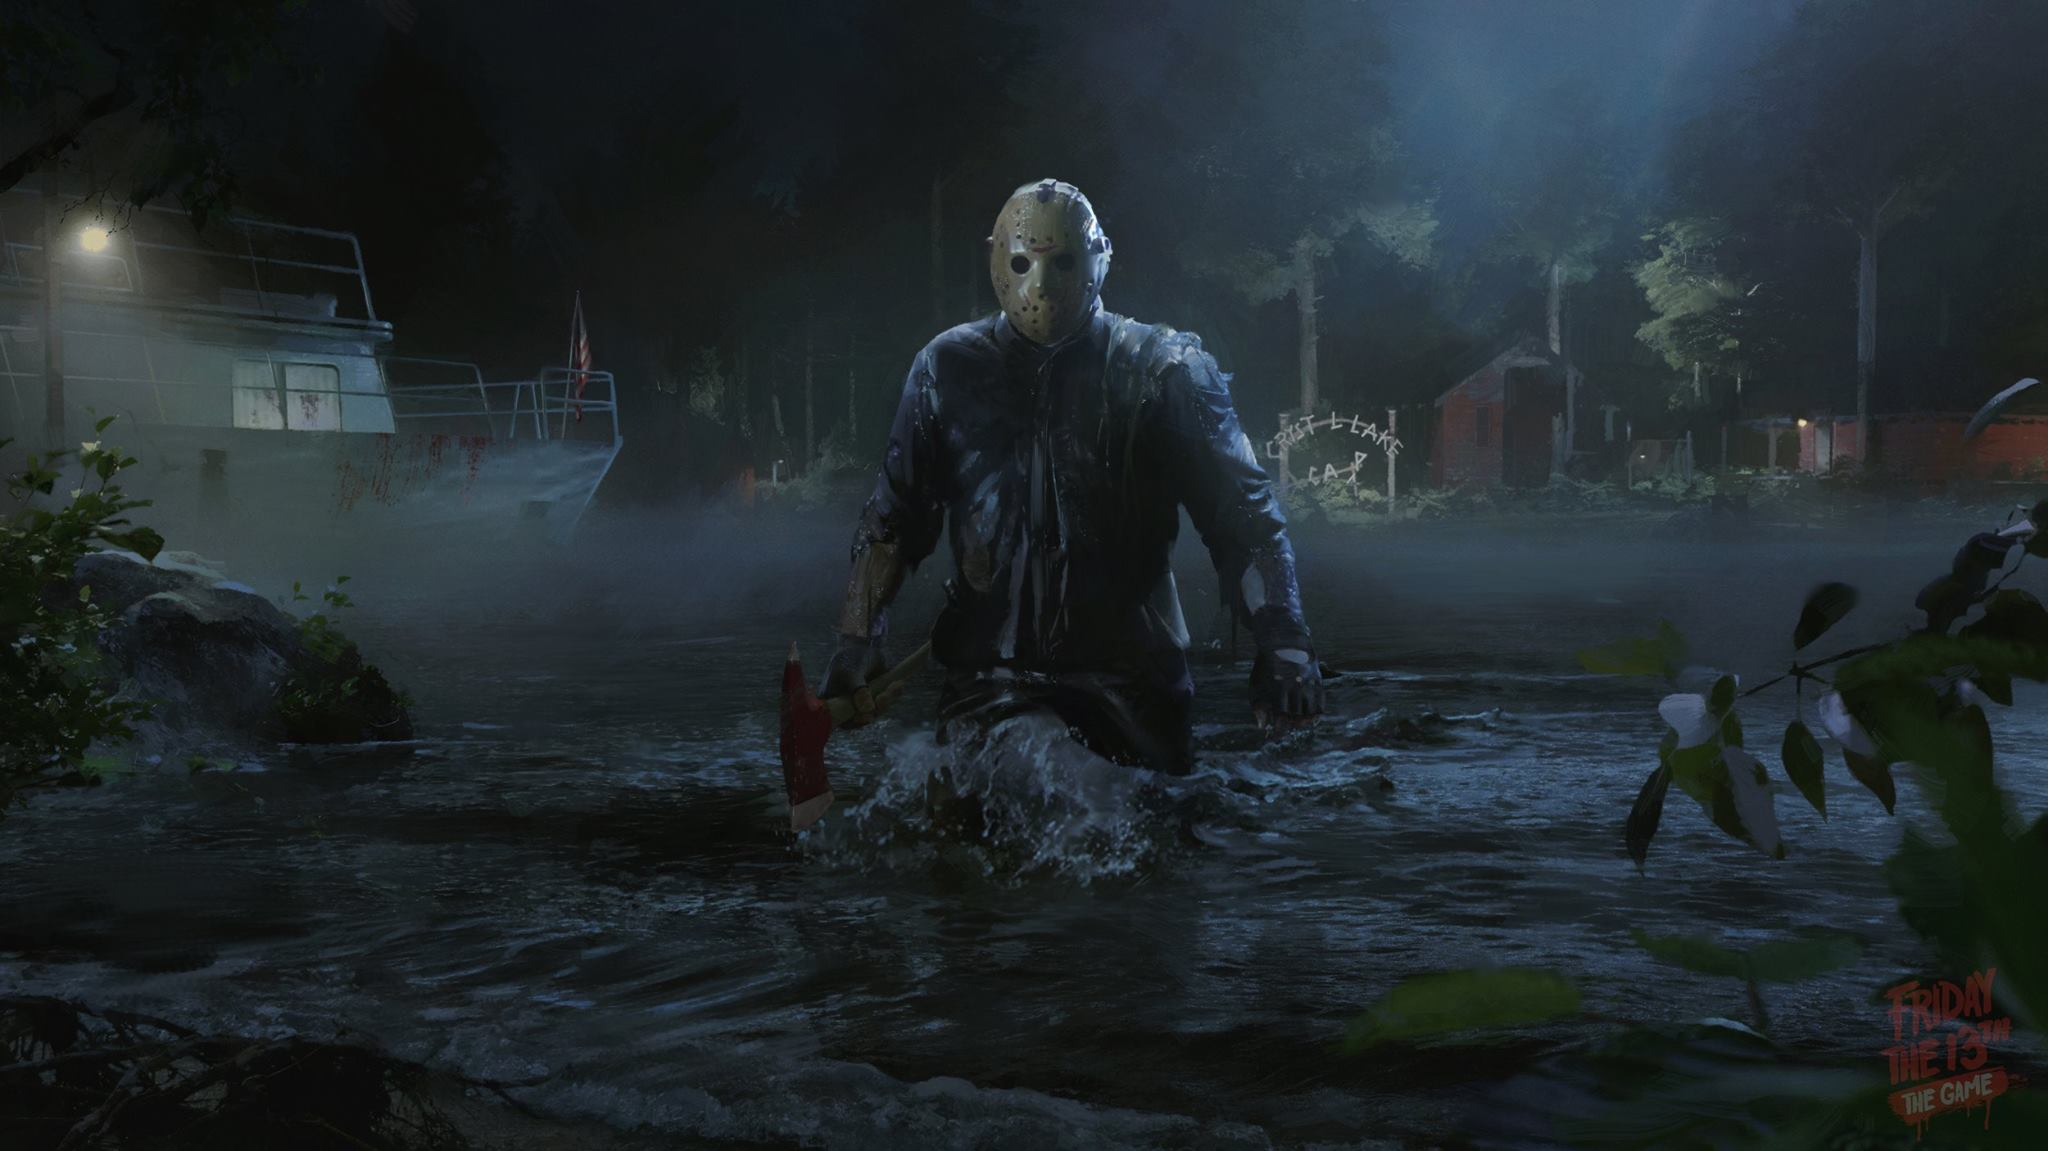 Final thoughts on Friday the 13th: The Game on Nintendo Switch